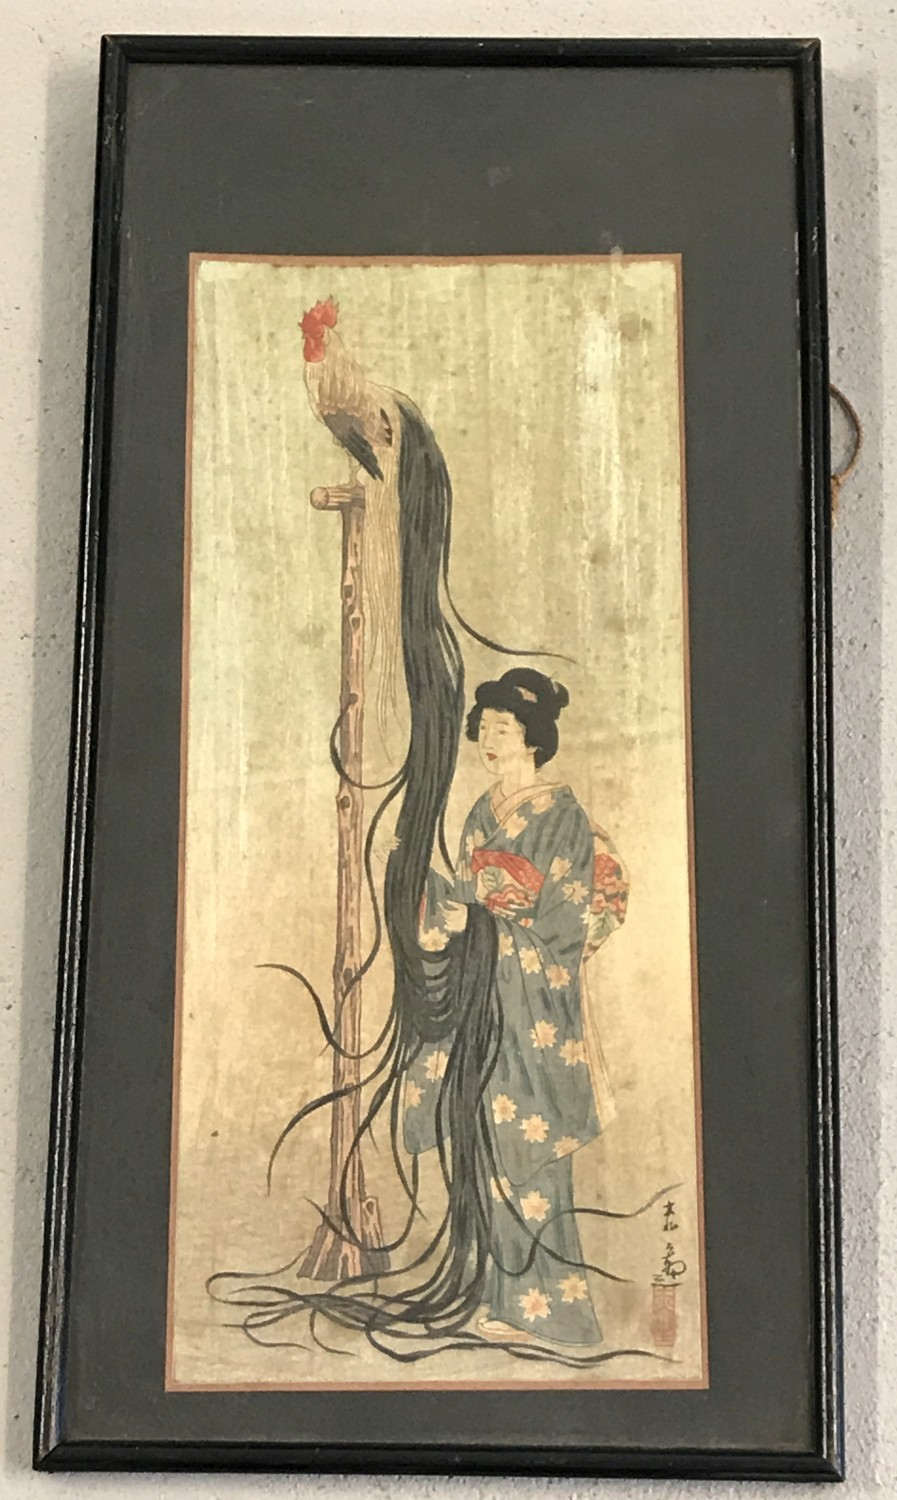 Lot 145 - A framed and glazed oriental watercolour depicting an oriental lady and a cockerel on a stand.